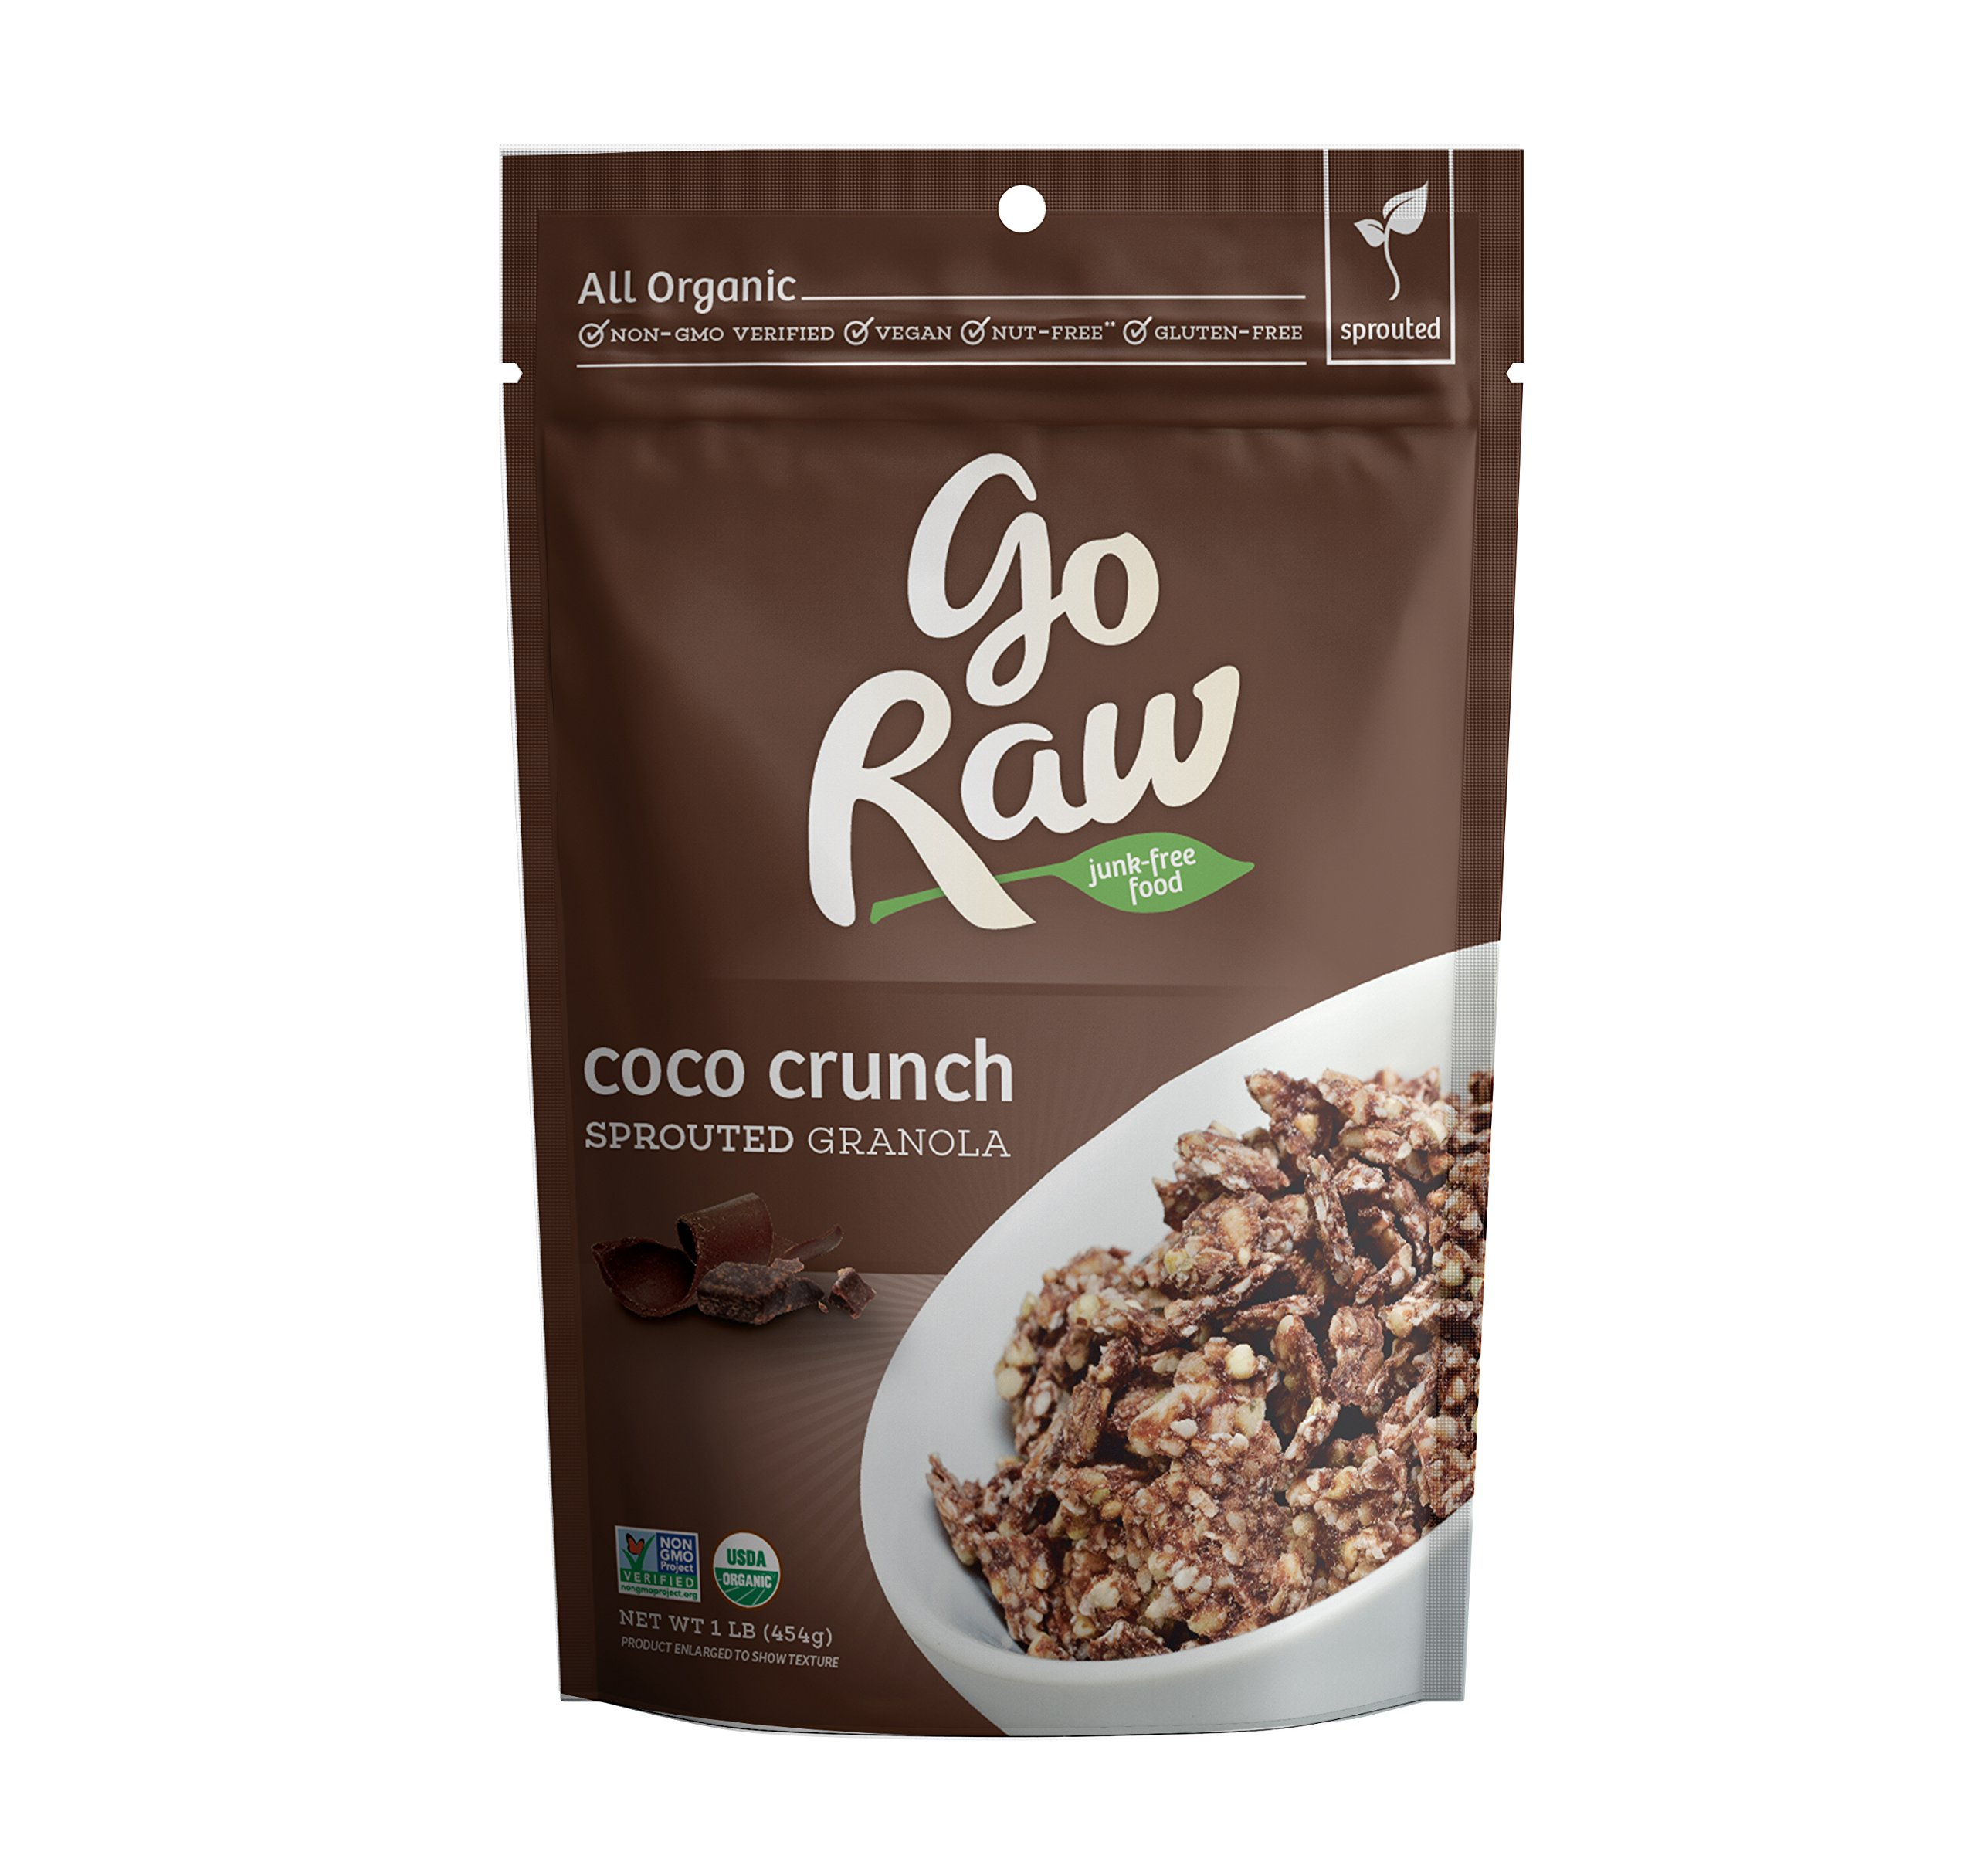 Go Raw 100% Organic, Chocolate Granola Cereal,. 16-Ounce Bags (Pack of 2)